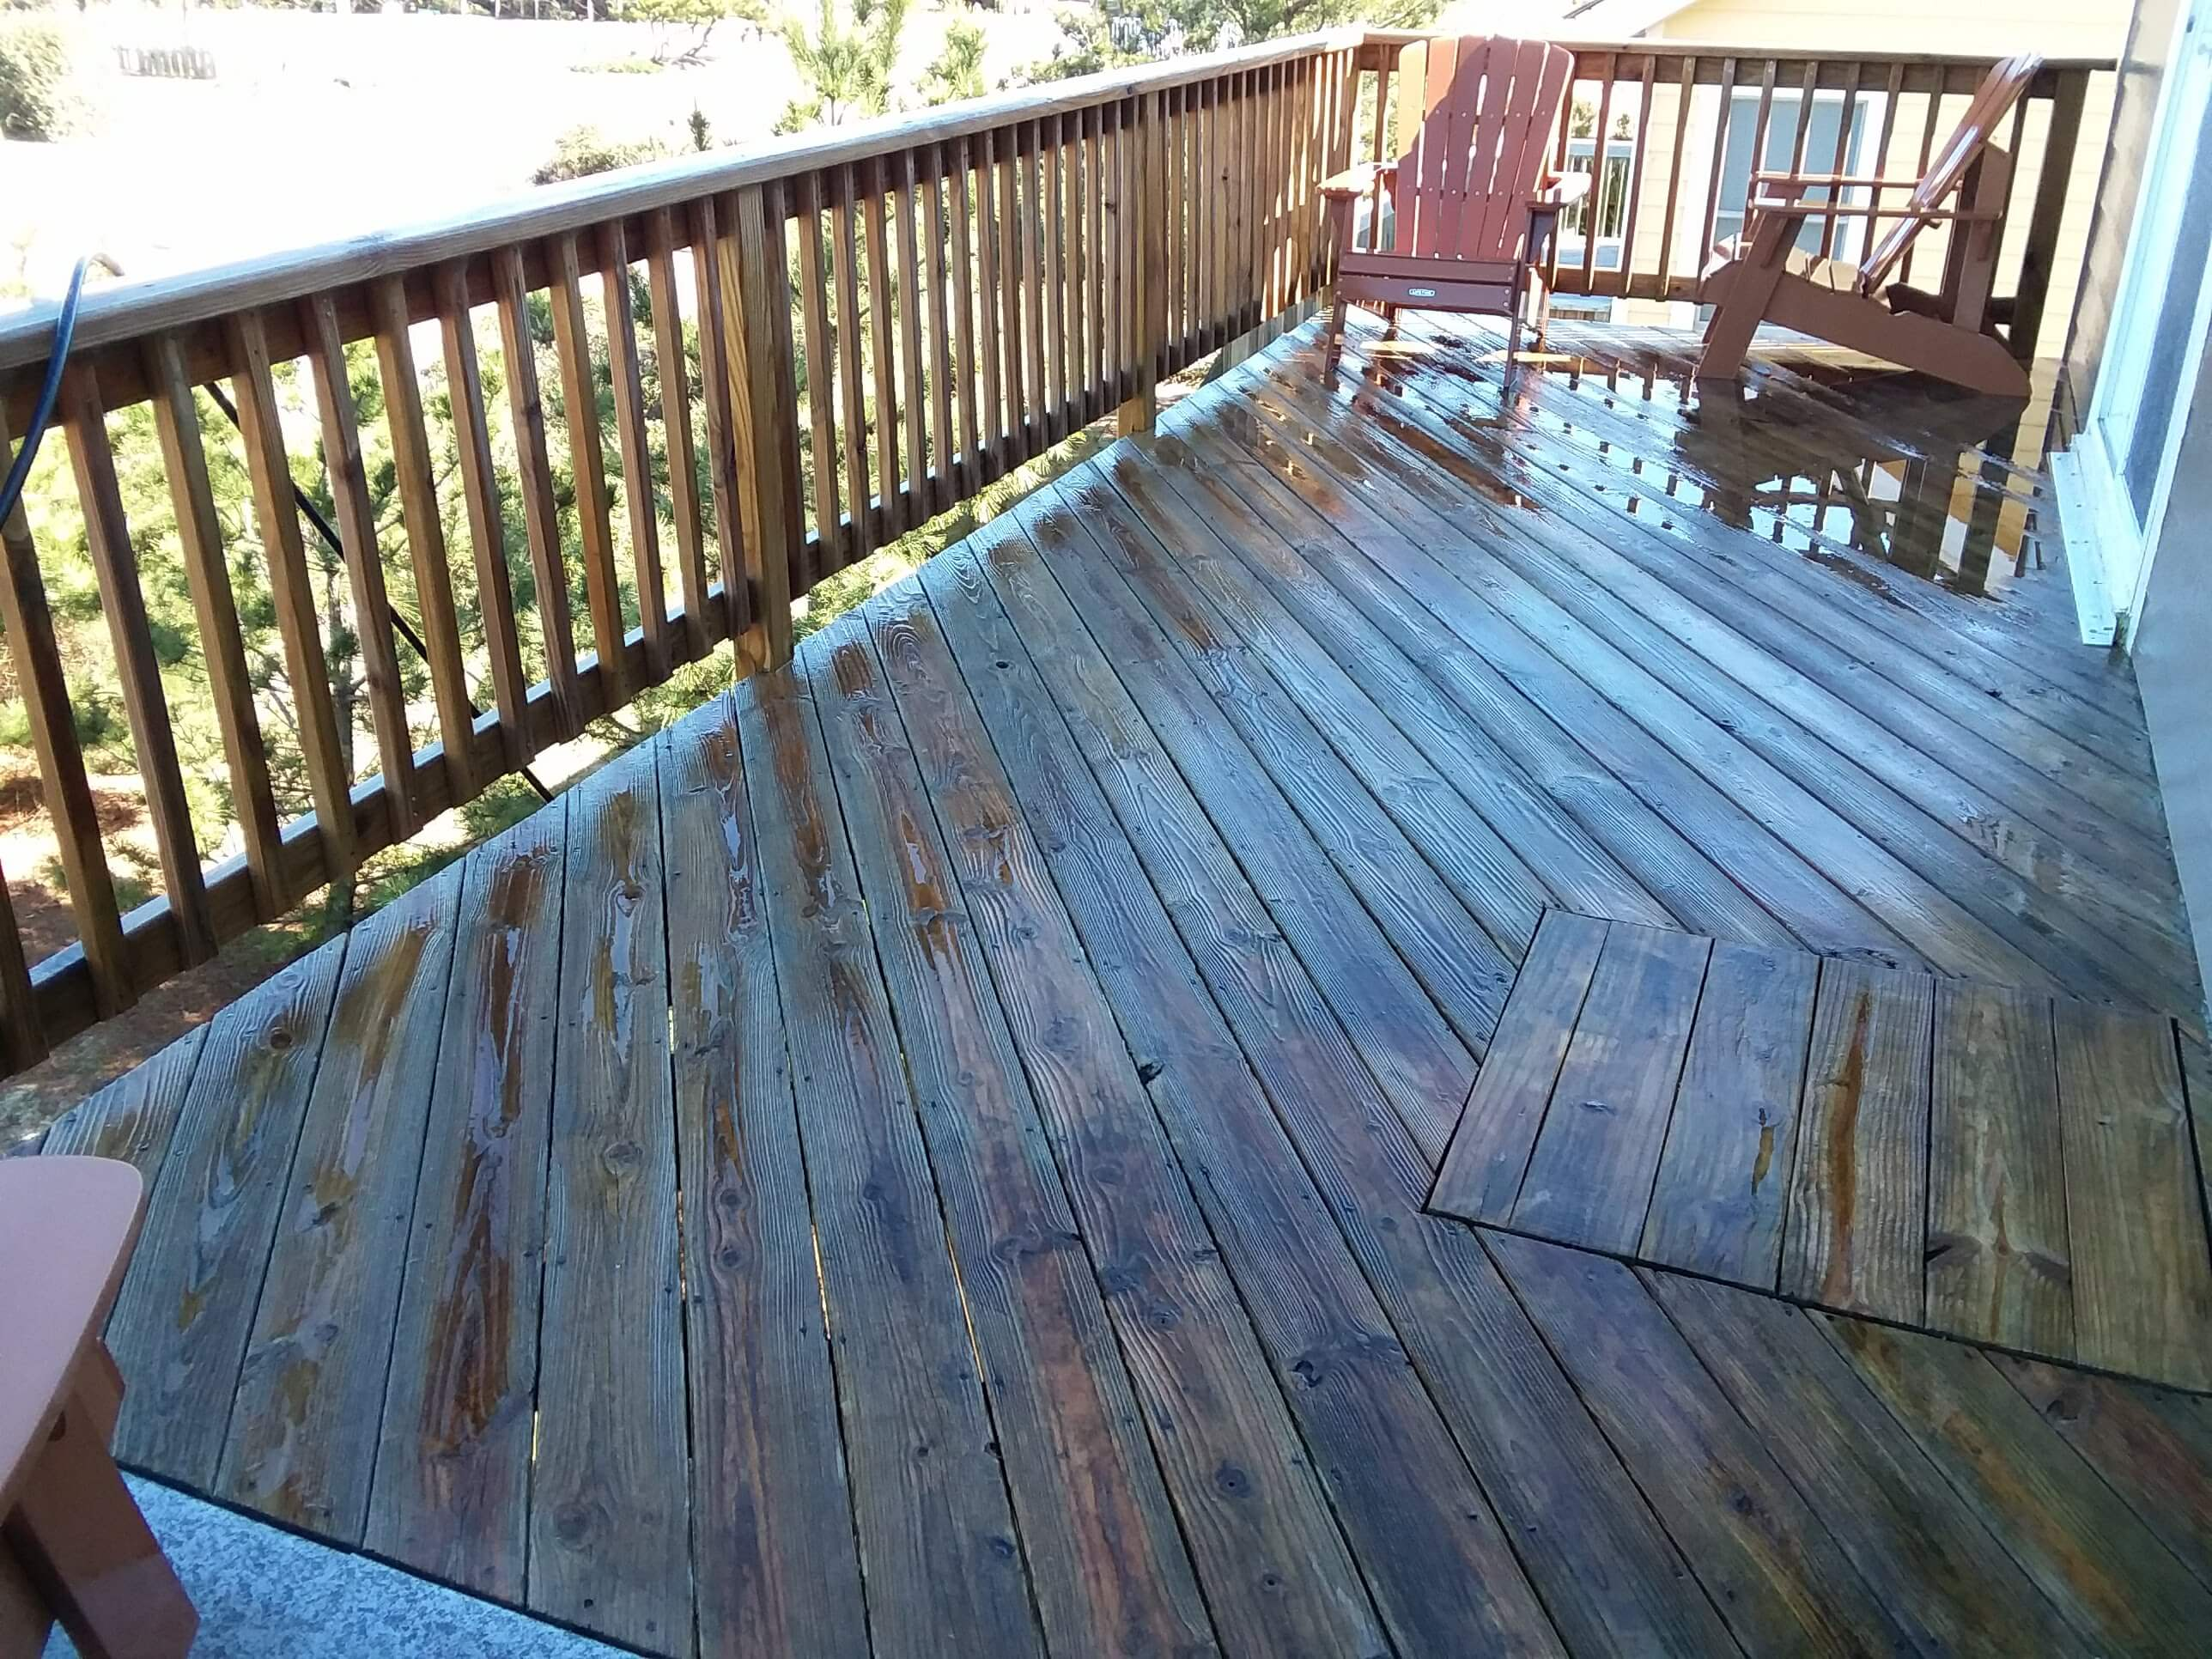 Carolina Pro Clean pressure washed deck 11